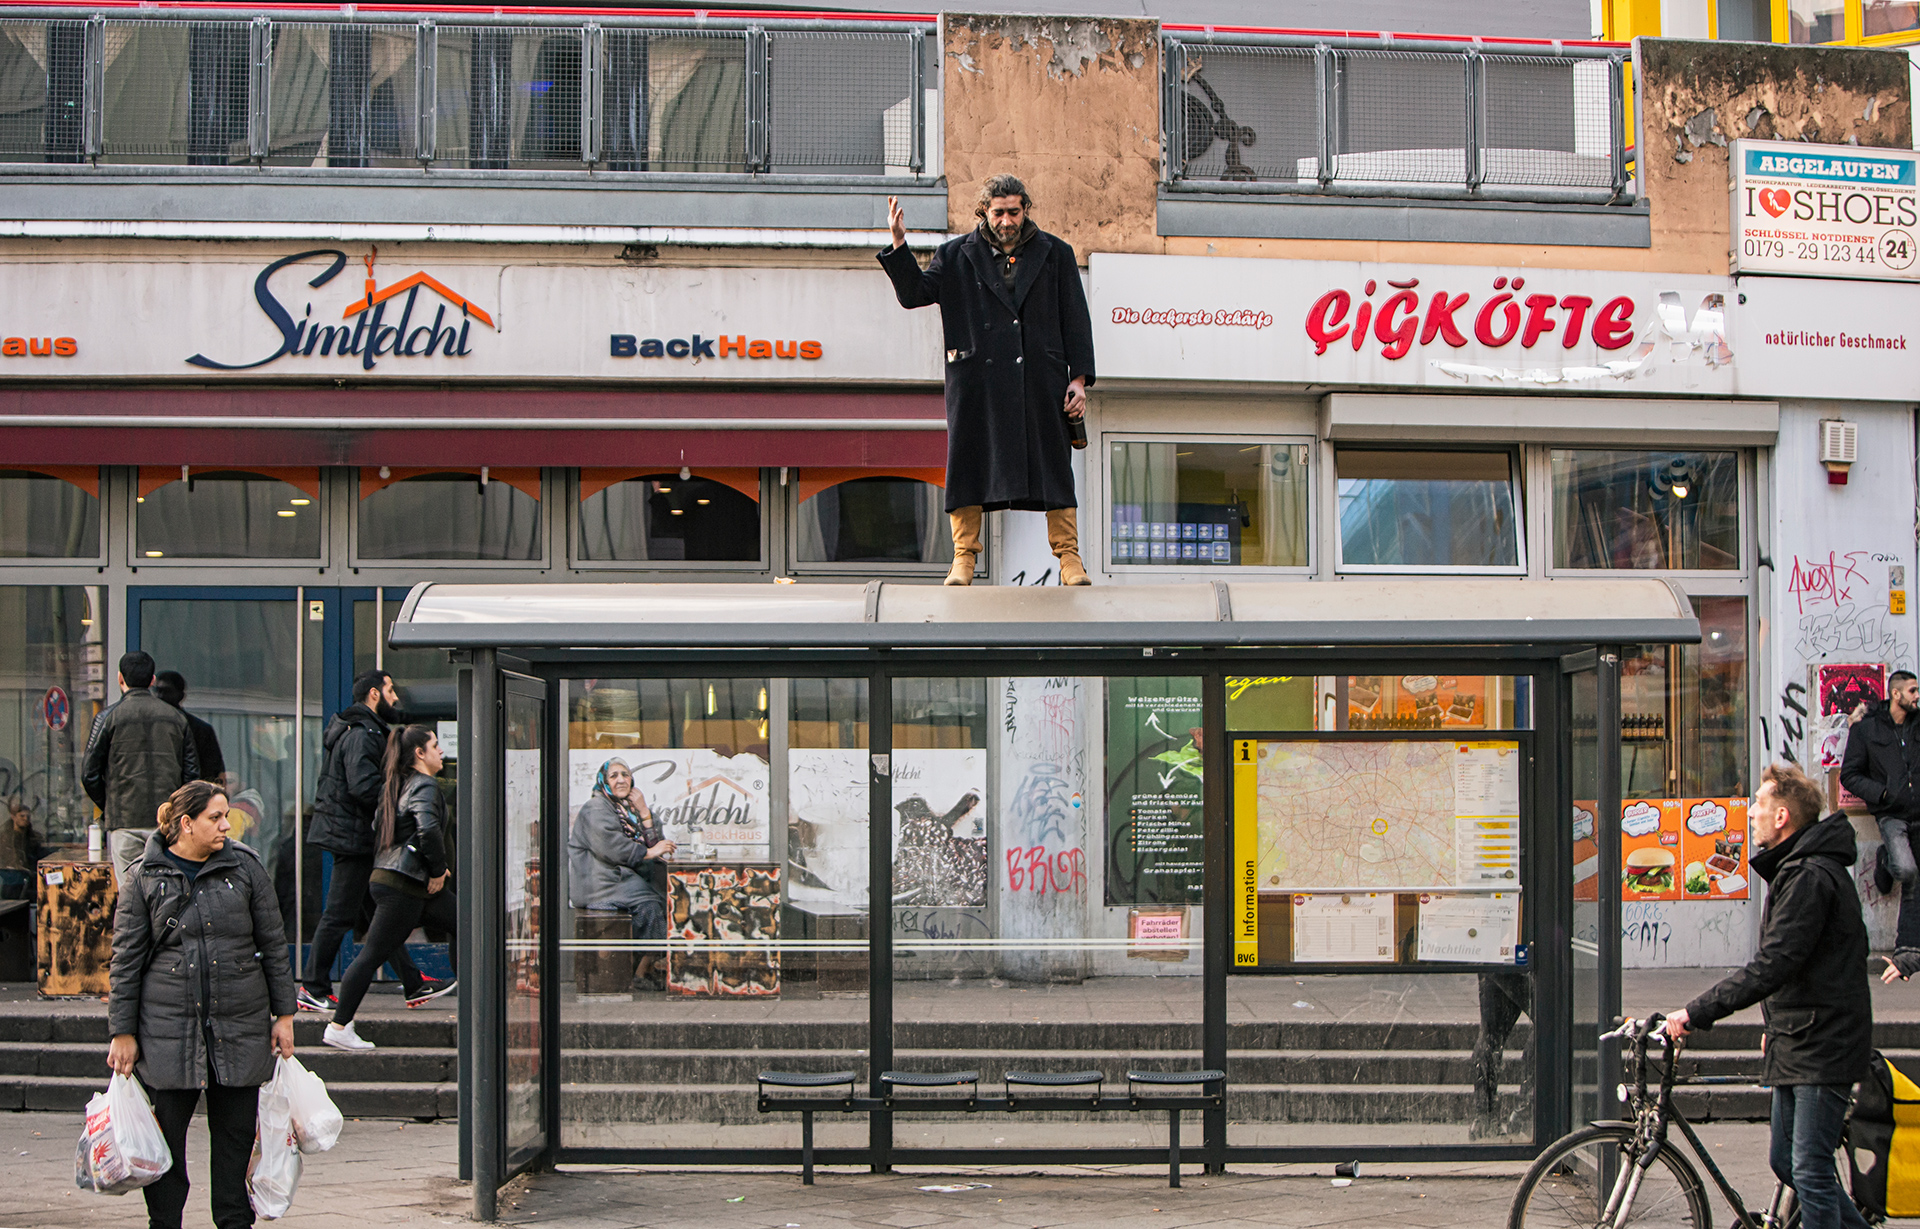 Street, Poet, Berlin, Germany. Europe, freedom, beggar, vagabond, bus stop